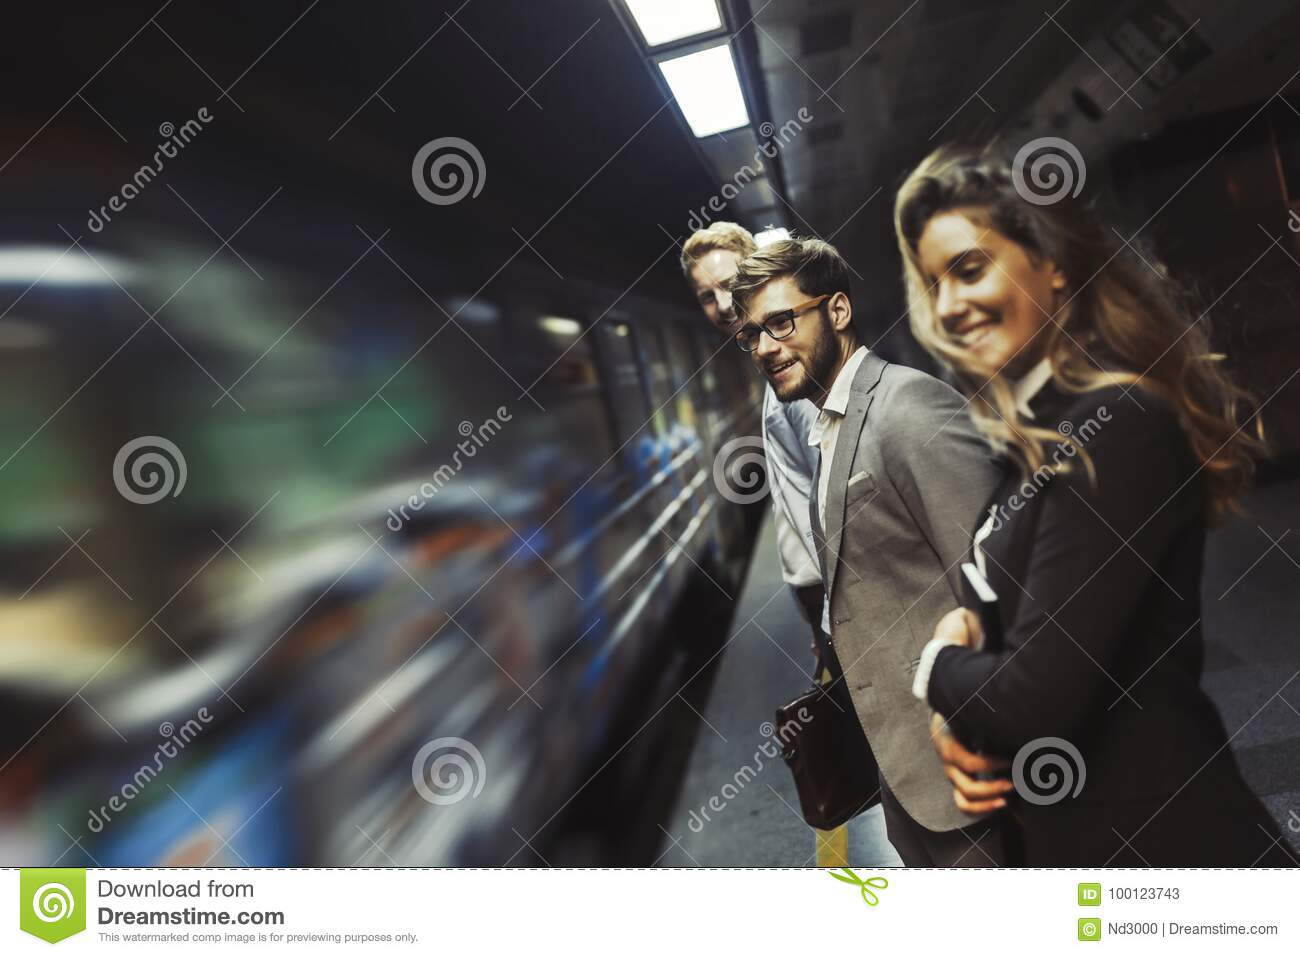 Business people waiting for subway